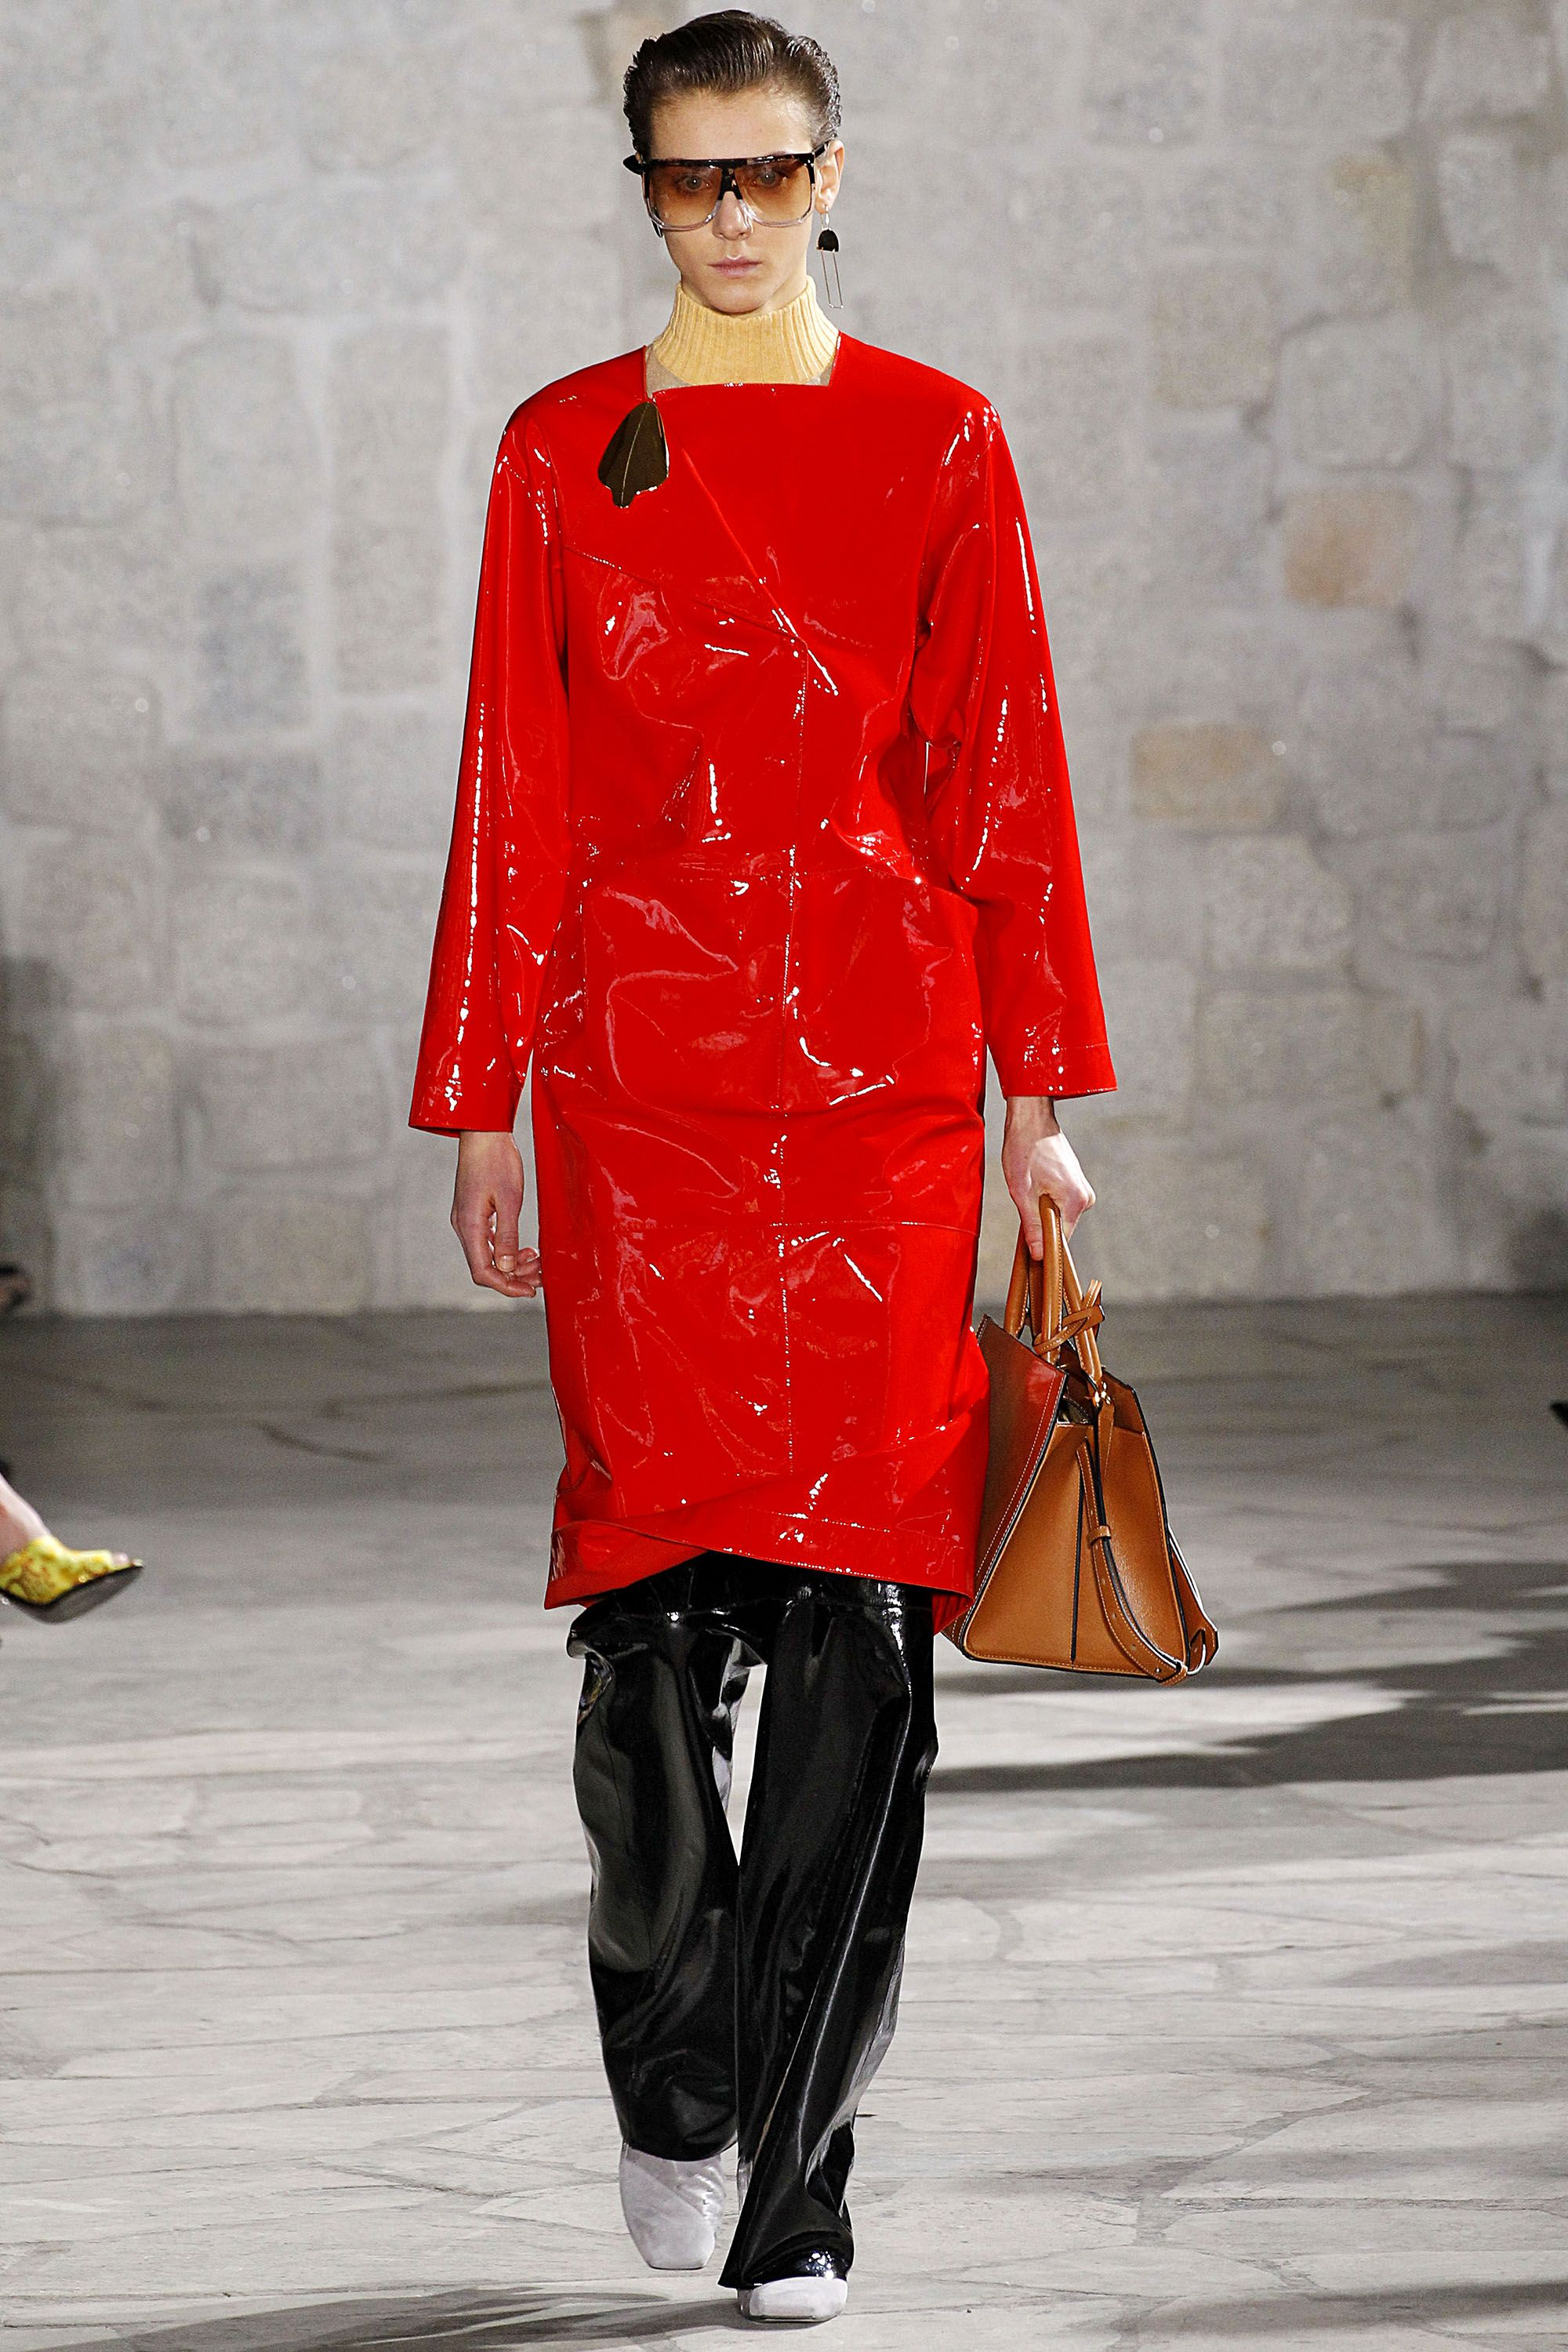 <p>After so much time celebrating the '70s, is the Reagan-era—with its bold colors and geometric shapes—ready for its time in the street style round-ups. J.W. Anderson, for one, would be pleased. </p>